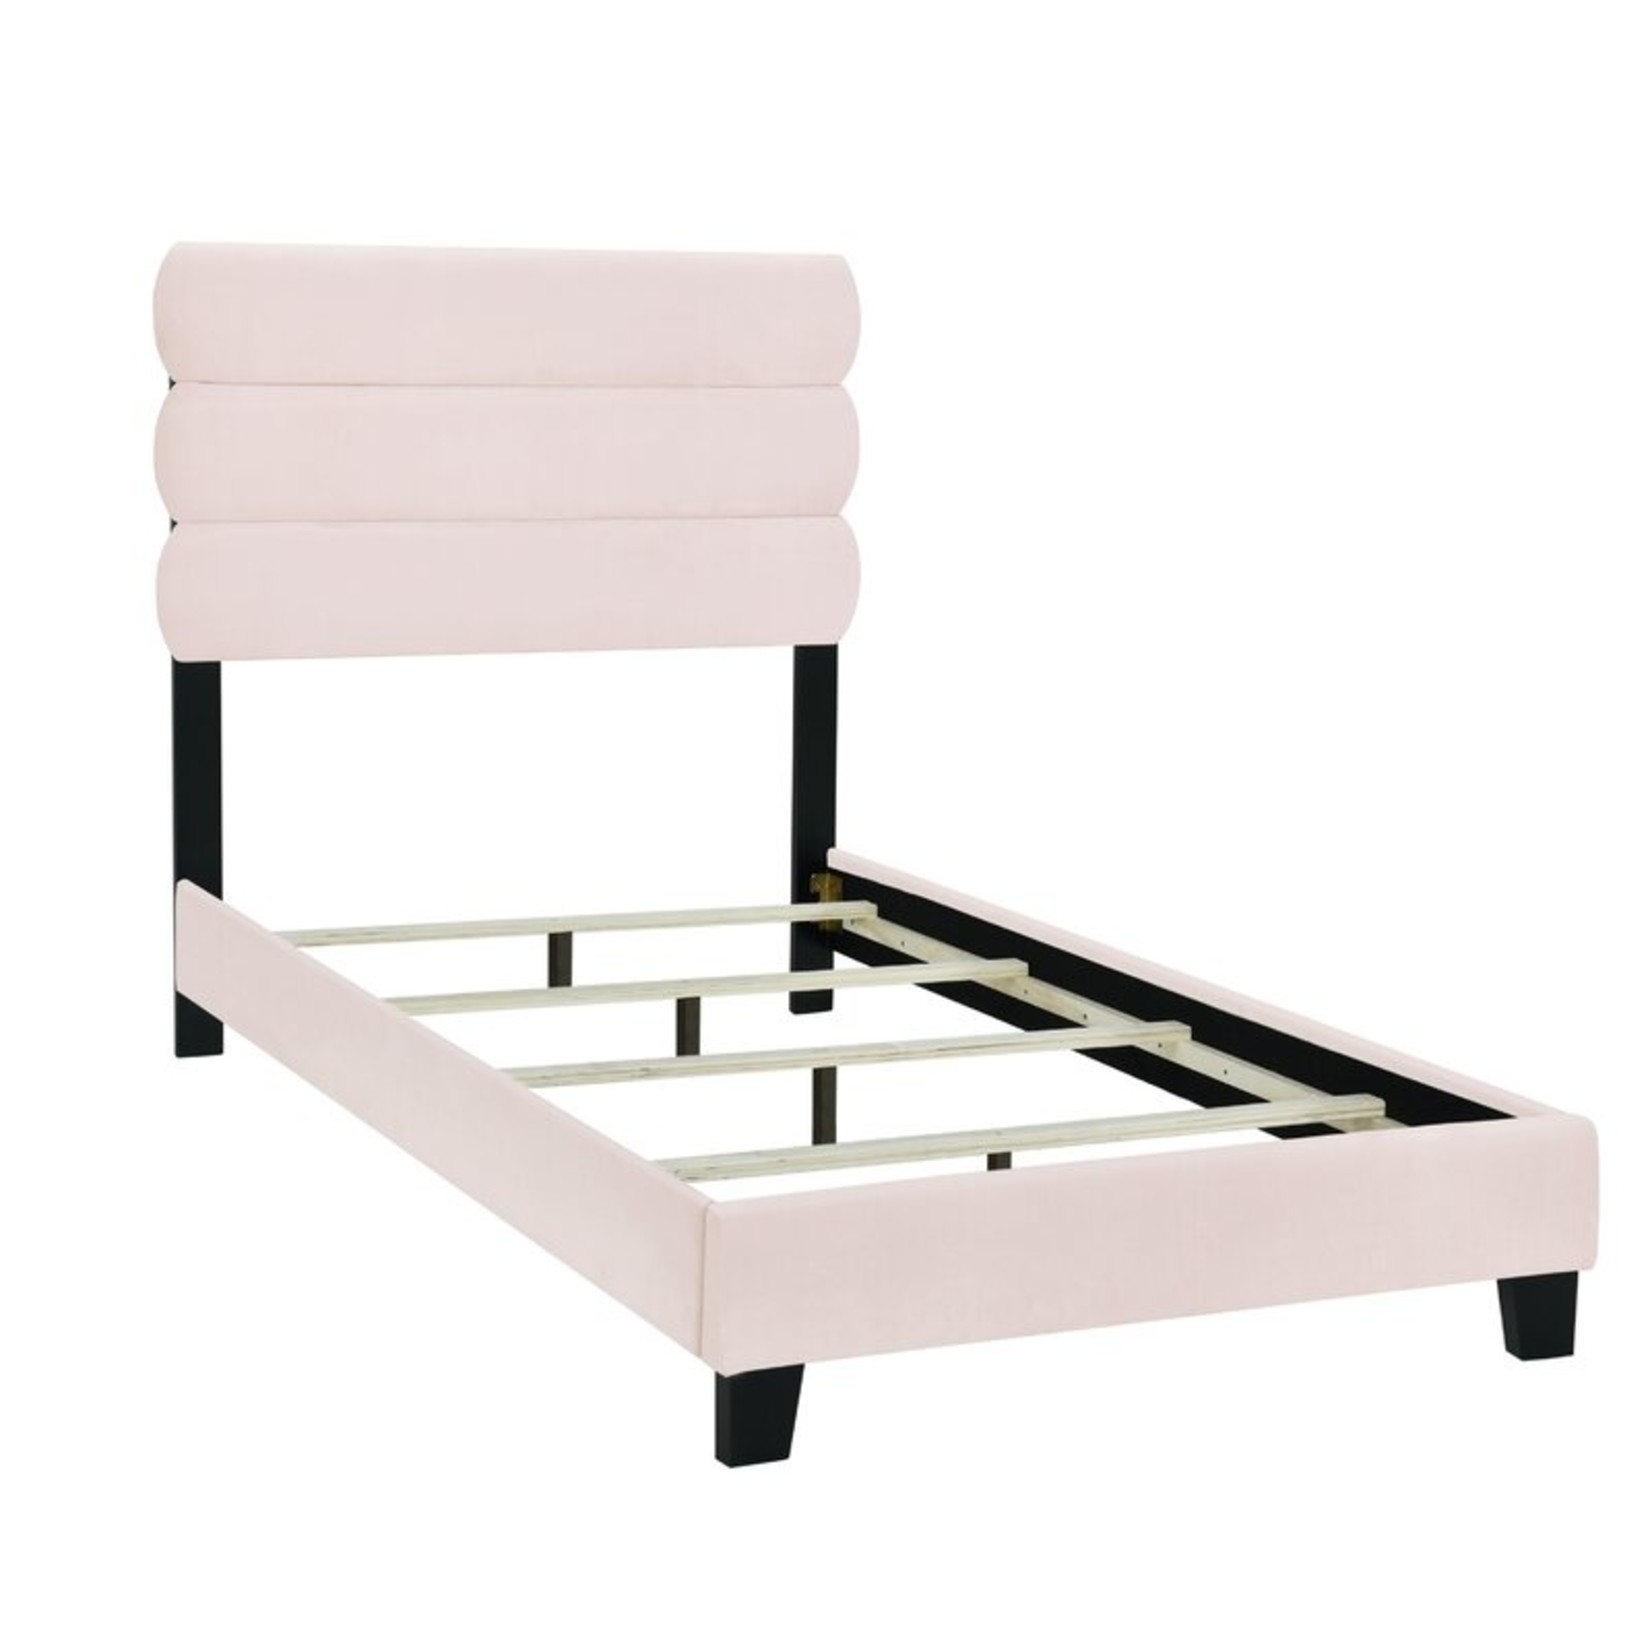 *Twin - Ronald One Box Slat Upholstered Standard Bed - Pink